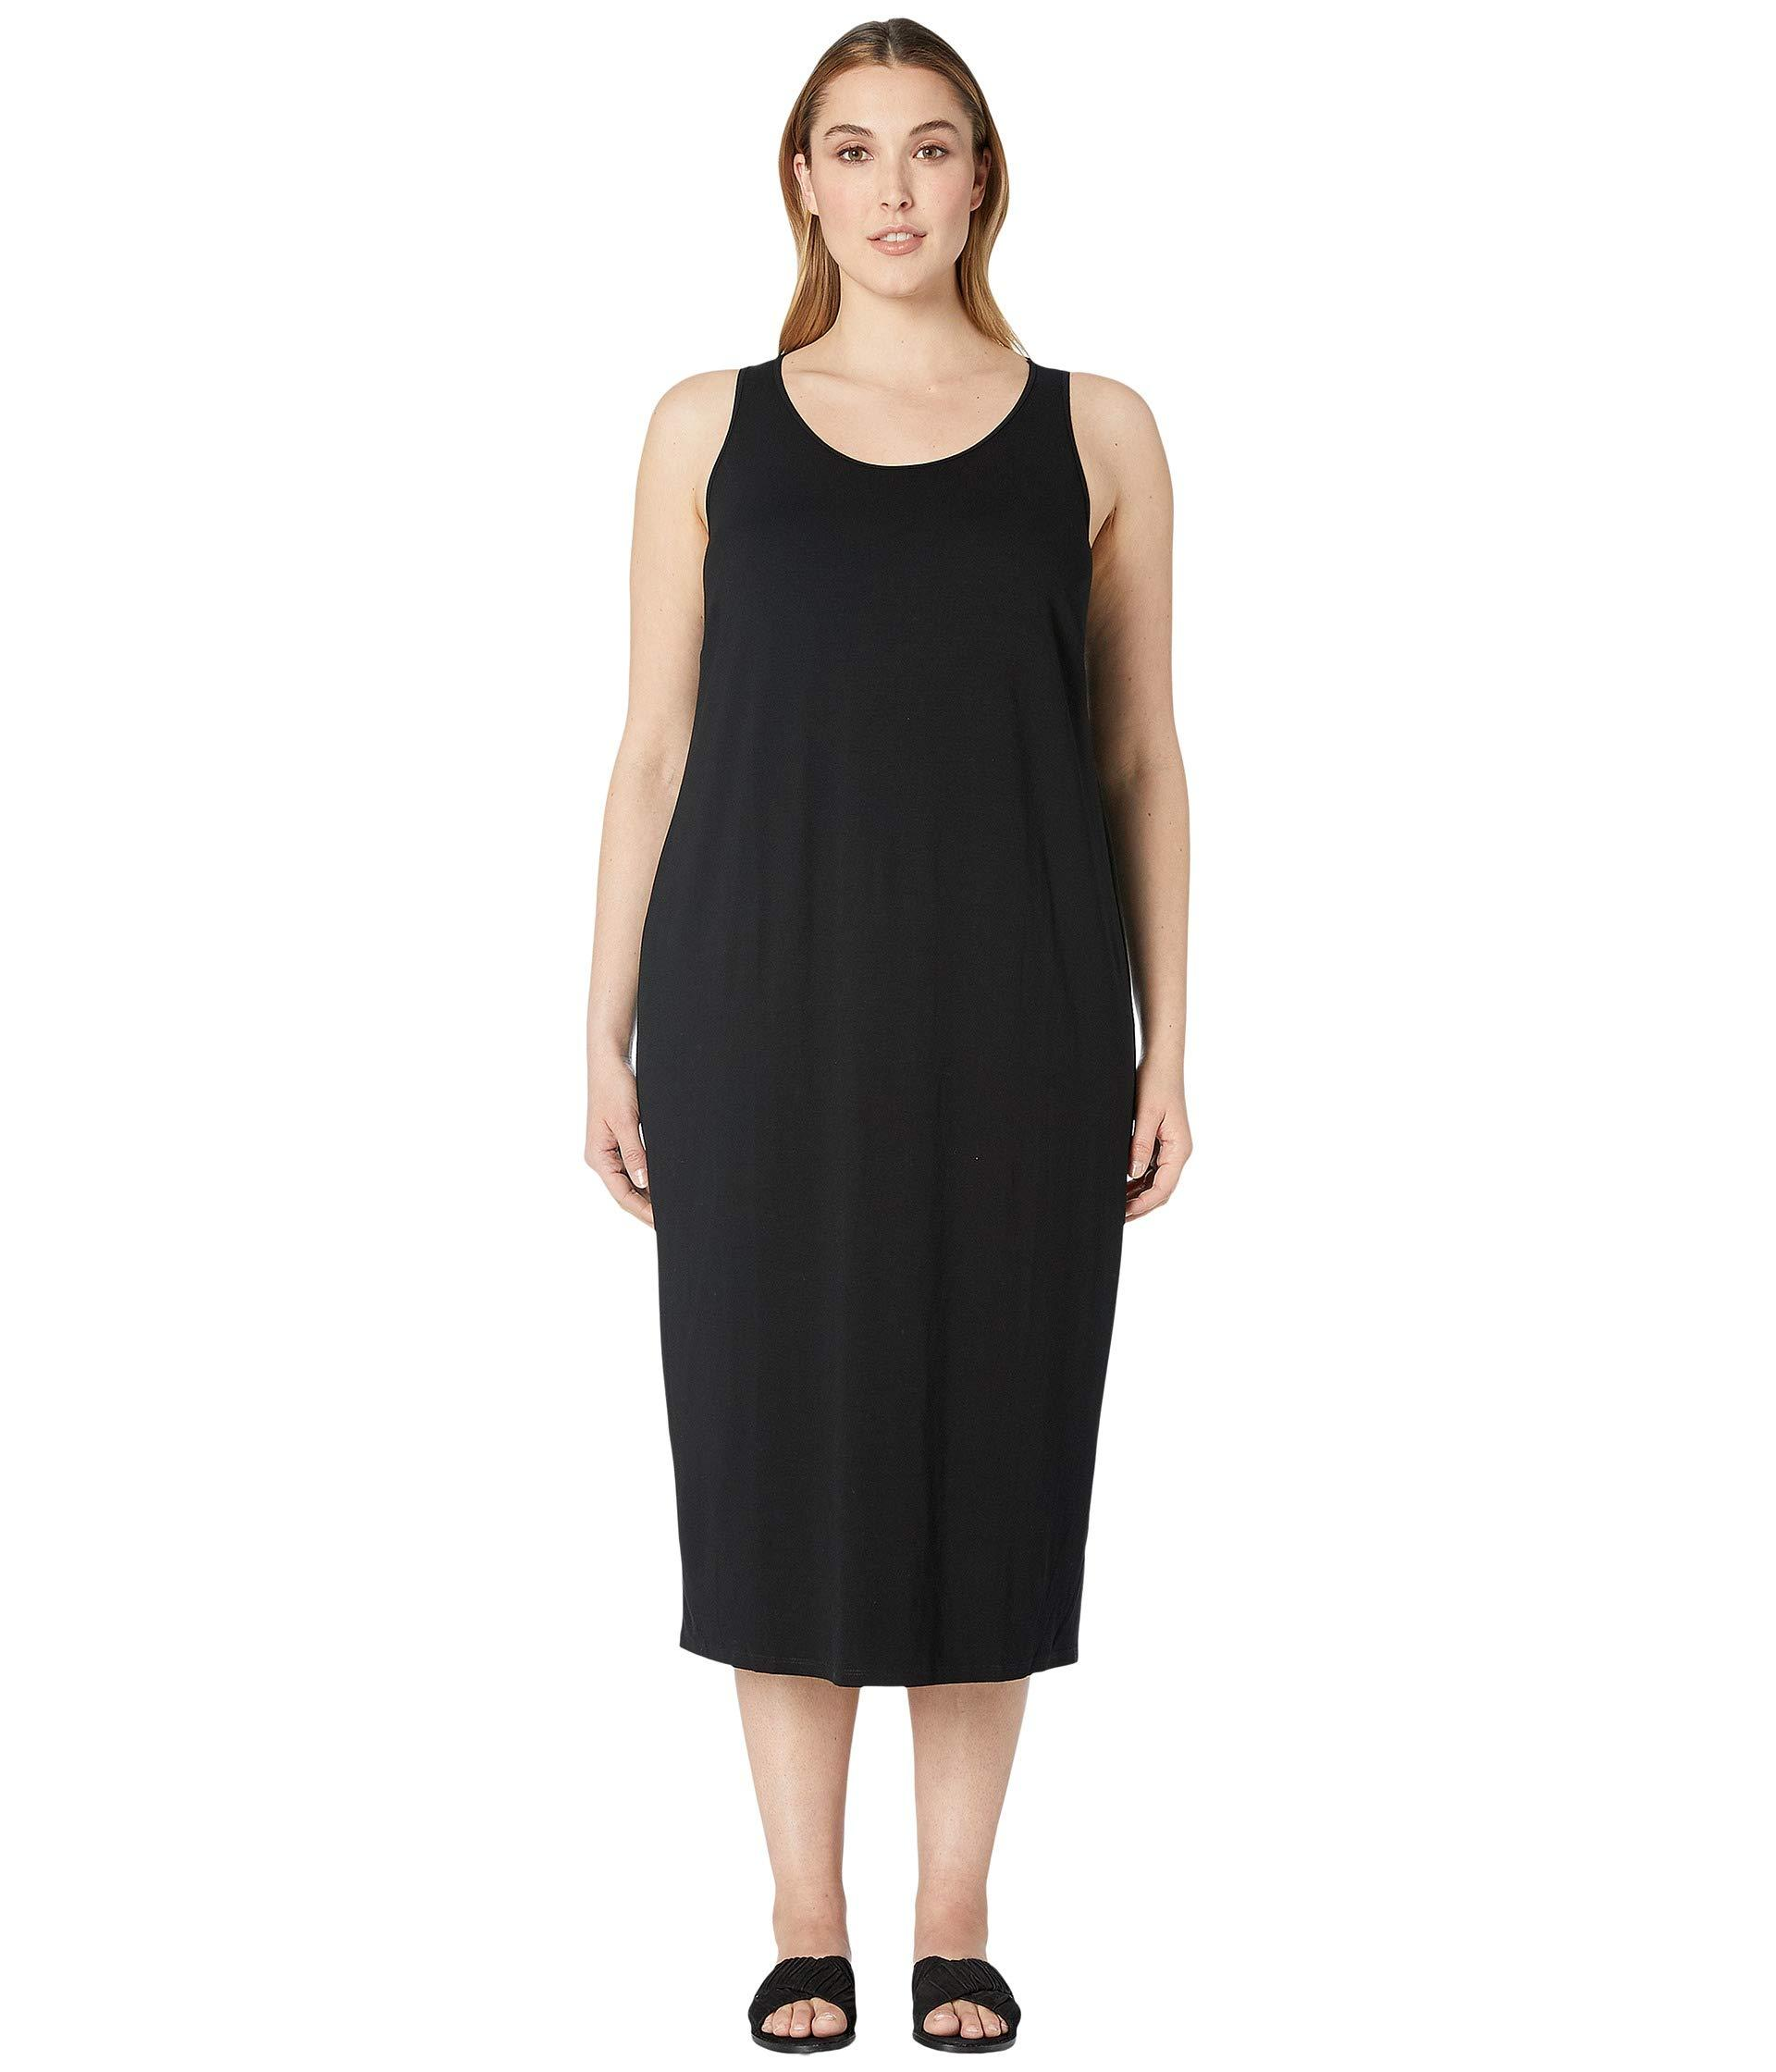 233f33ebd3 Lyst - Eileen Fisher Plus Size Viscose Jersey Scoop Neck Dress ...